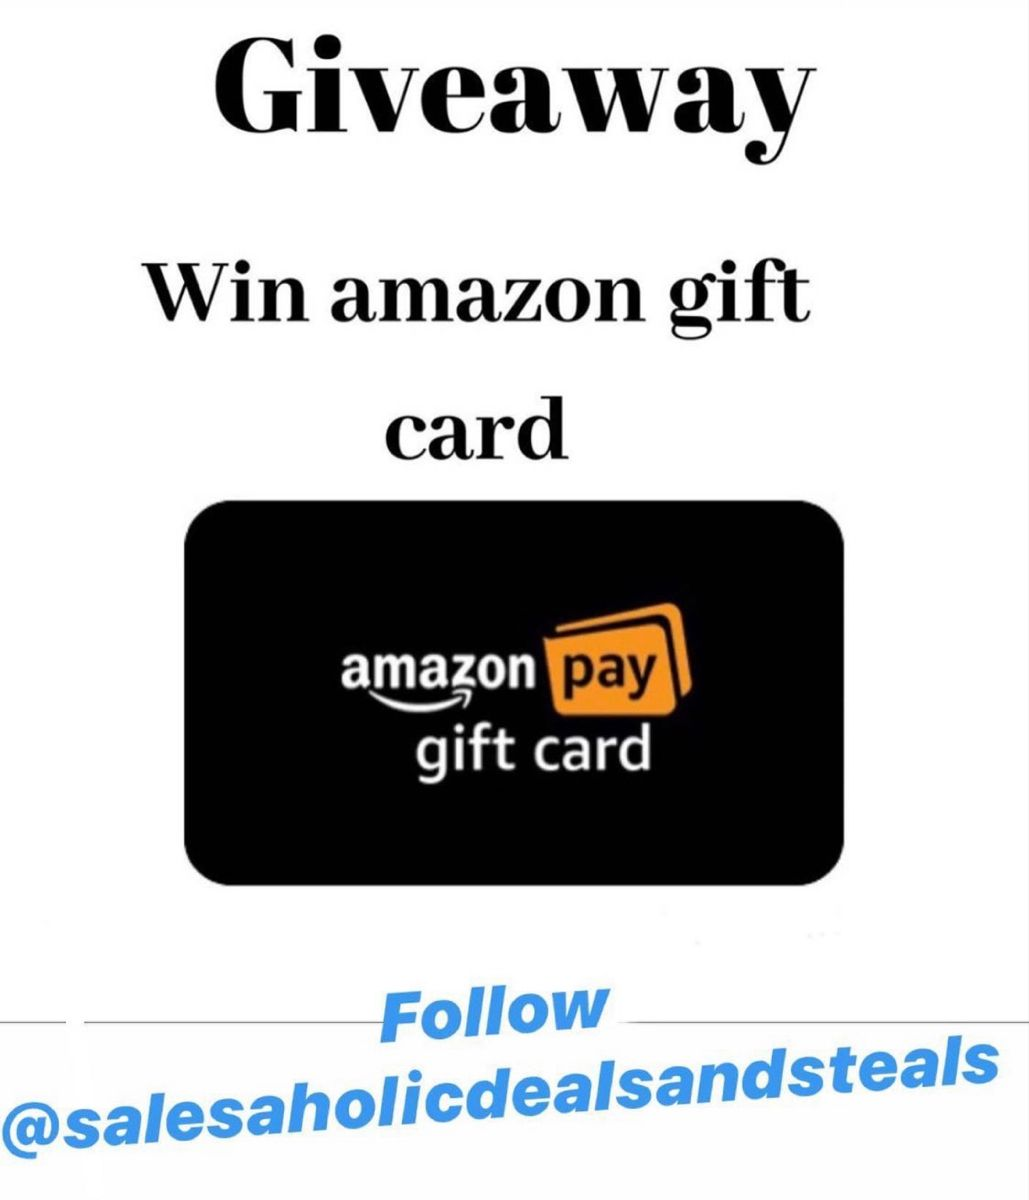 Win Amazon Gift Card In 2020 Amazon Gifts Amazon Gift Cards Gift Card